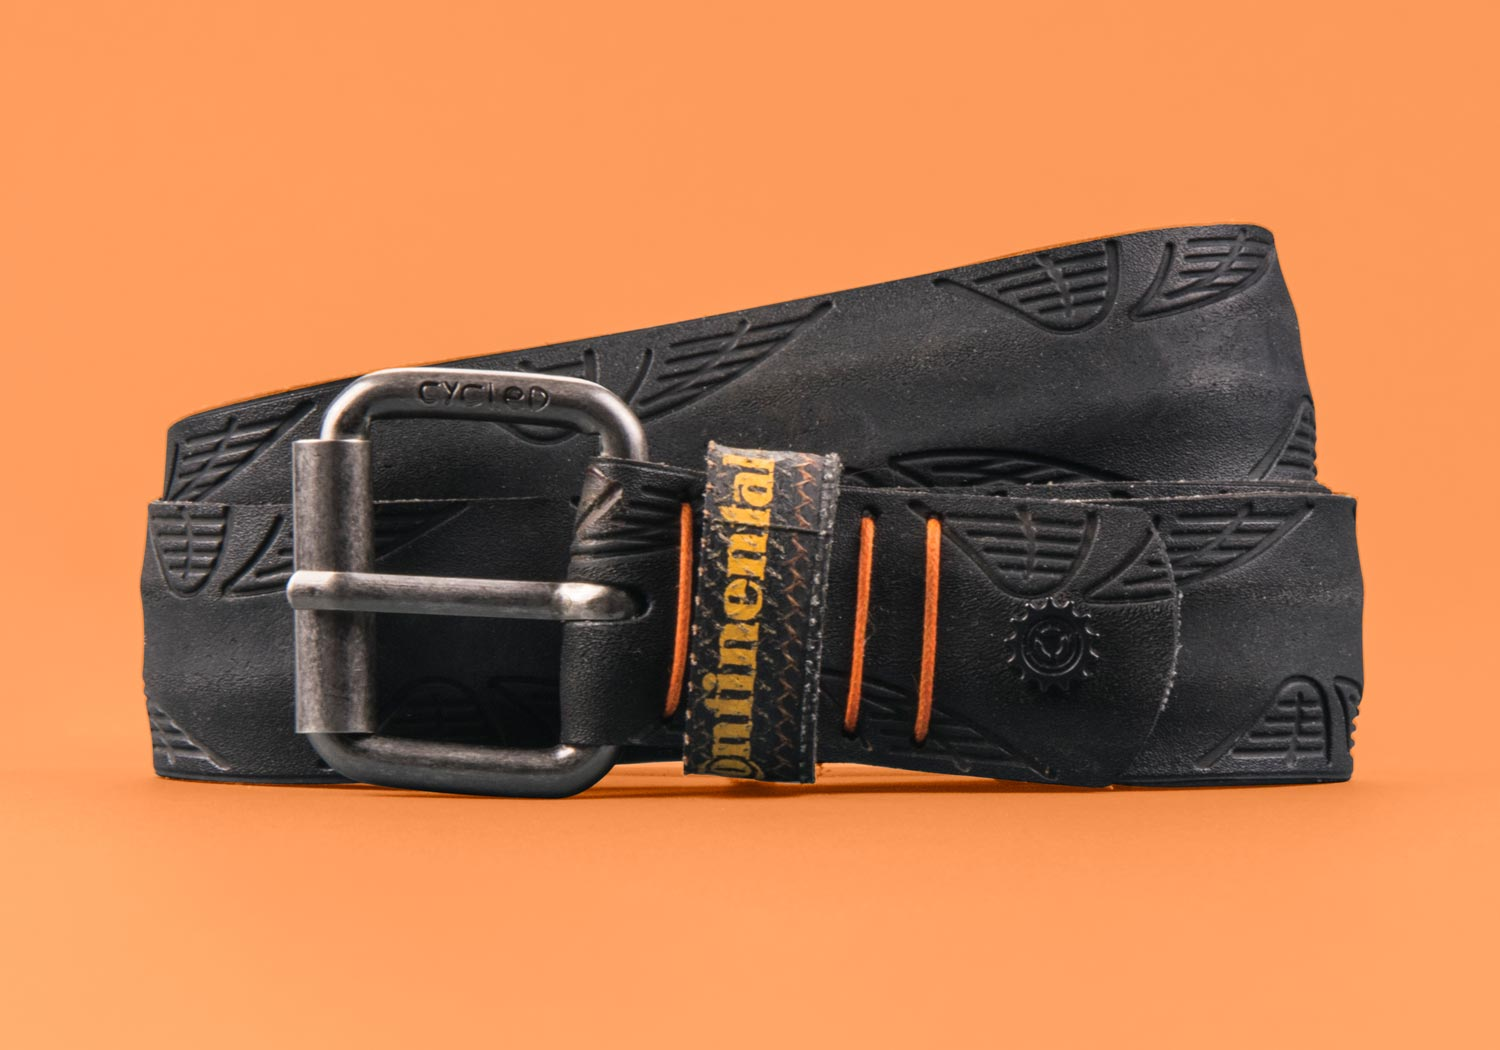 sport-belts-cycled